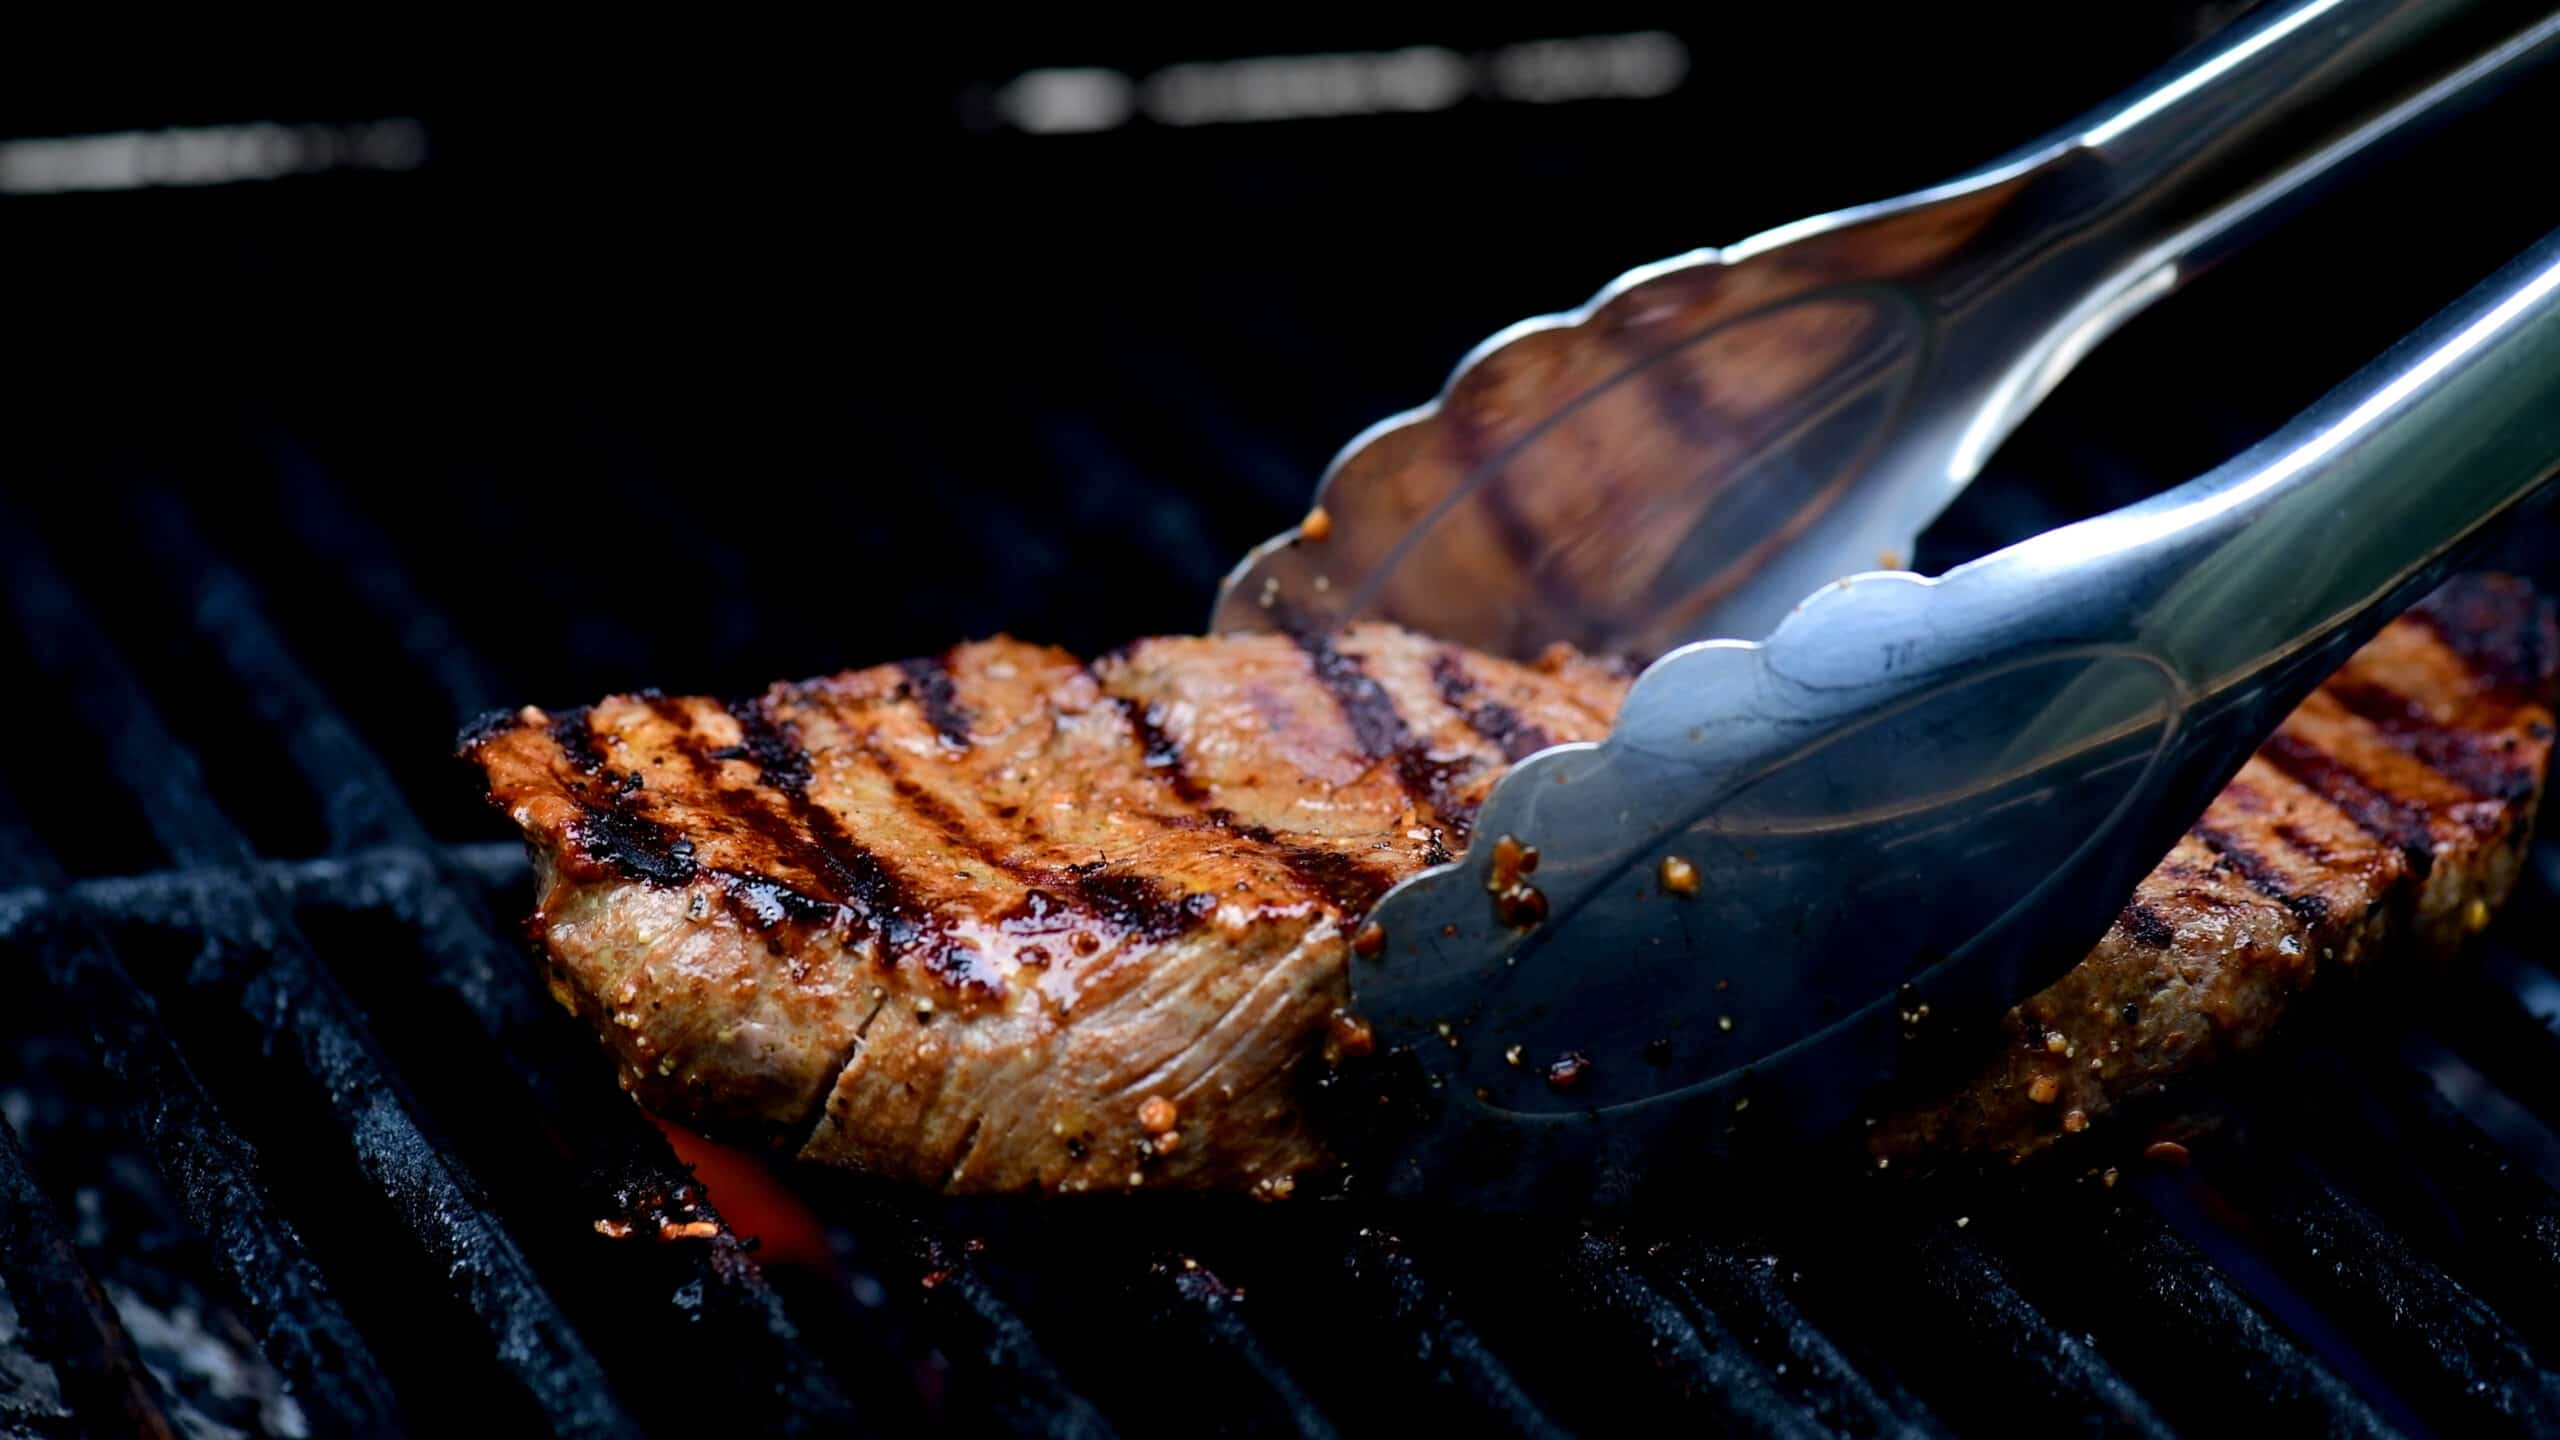 placing a steak on the grill with tongs